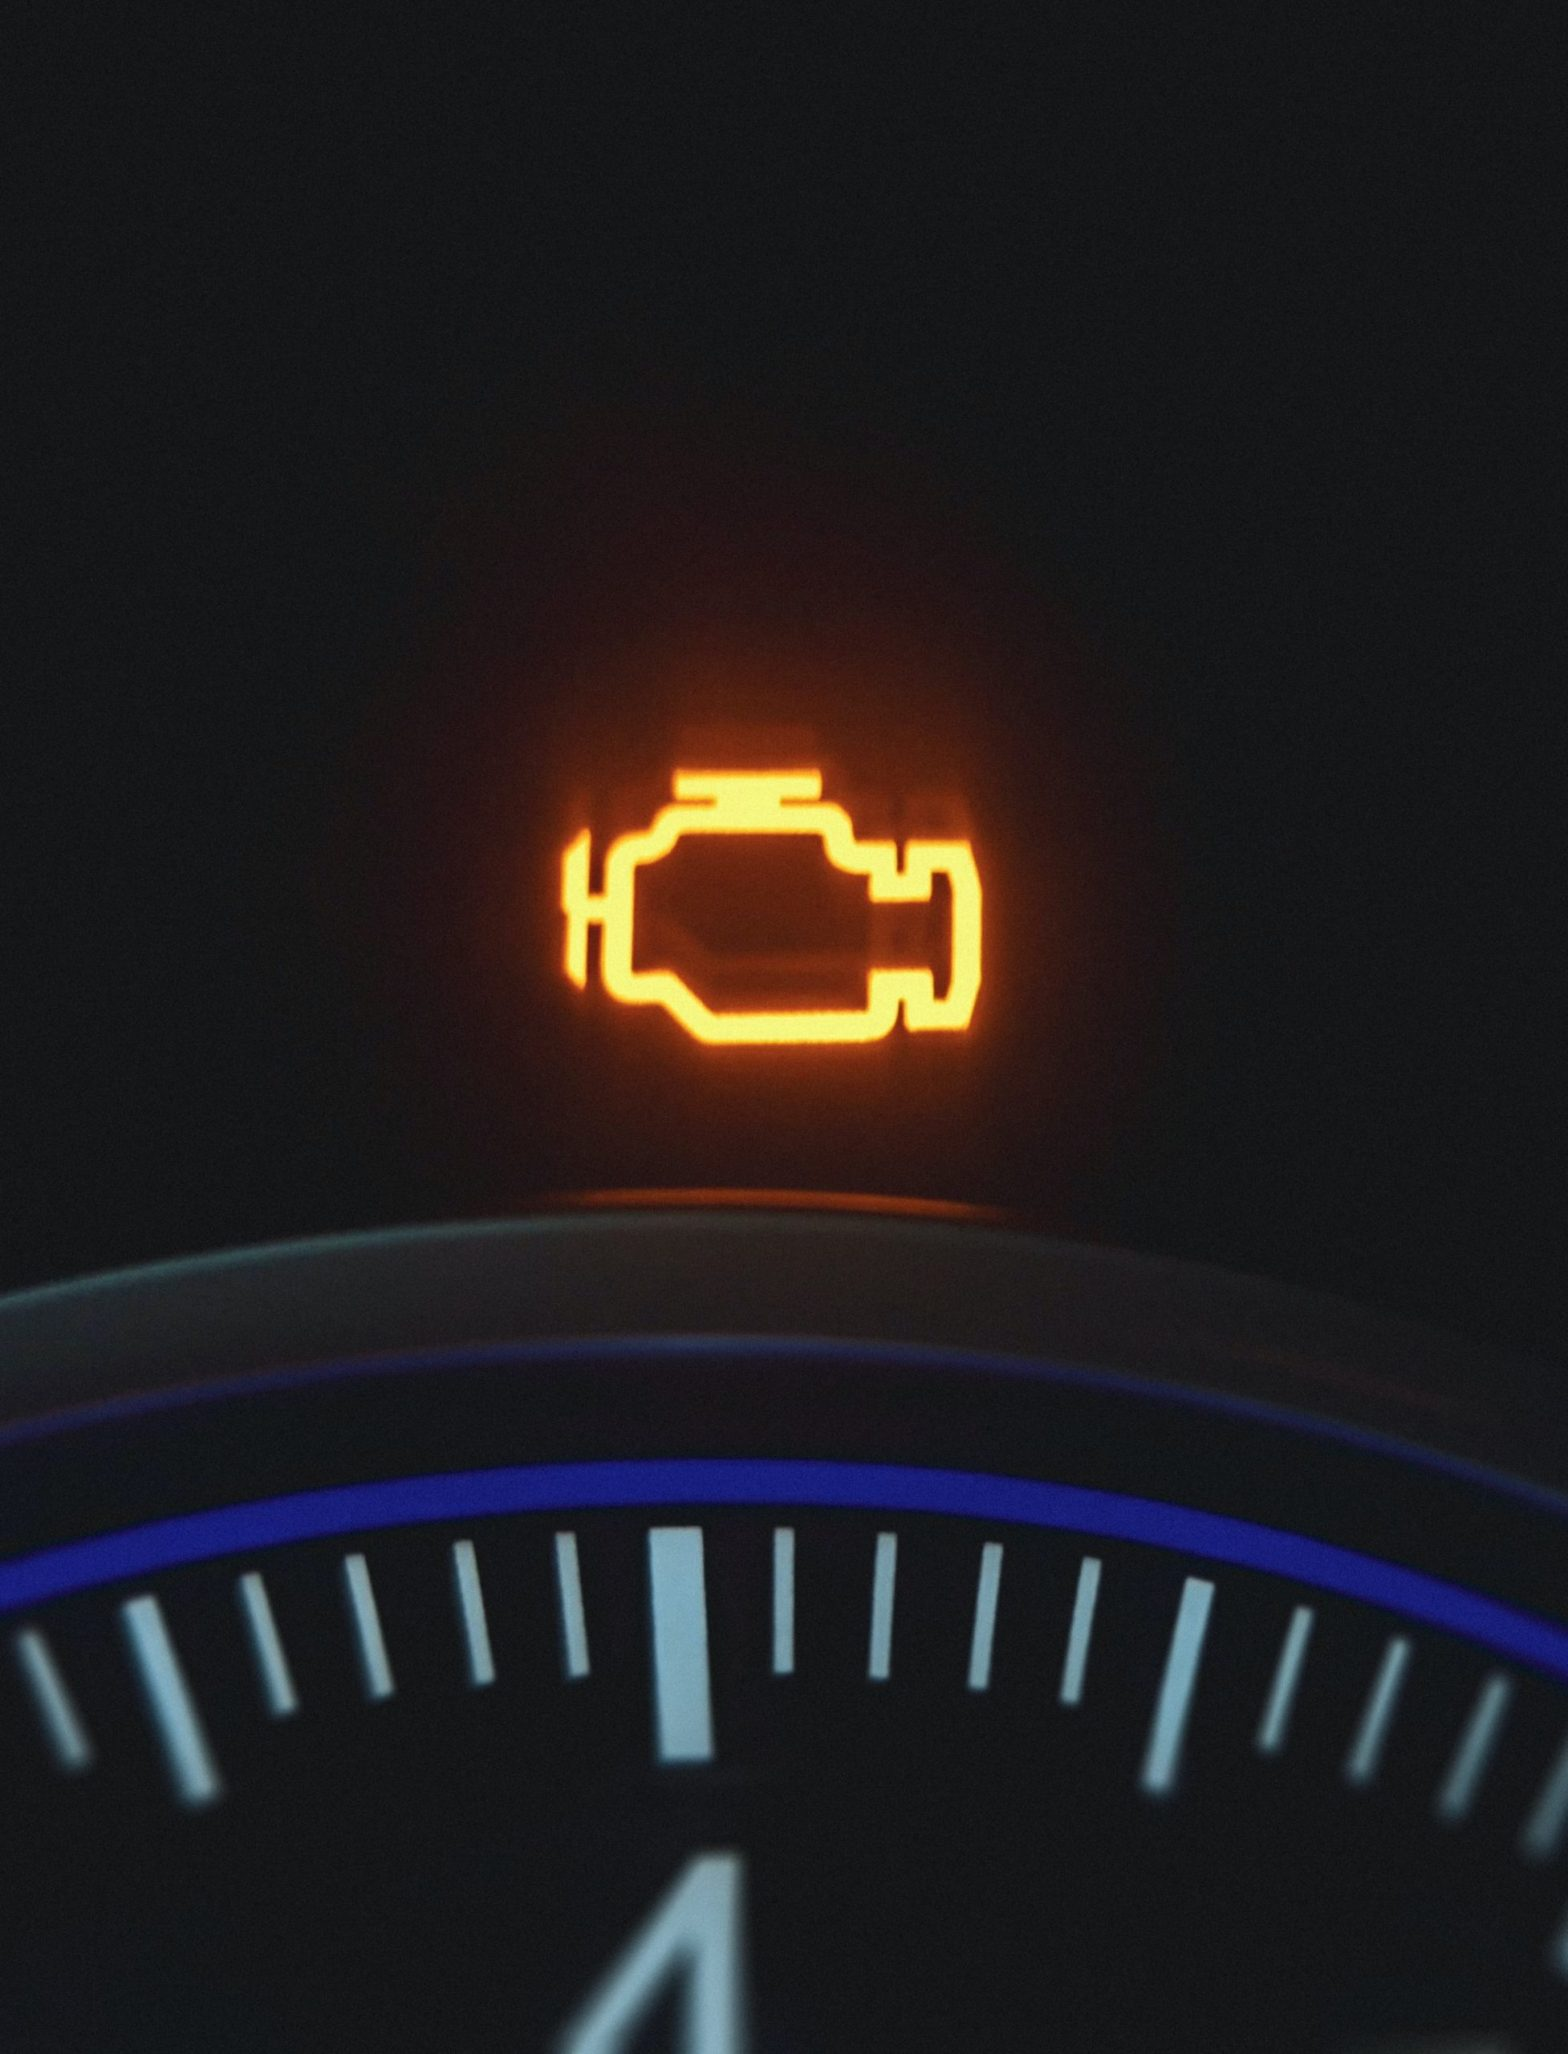 Illuminated check engine light–the equivalent of ignoring your feelings